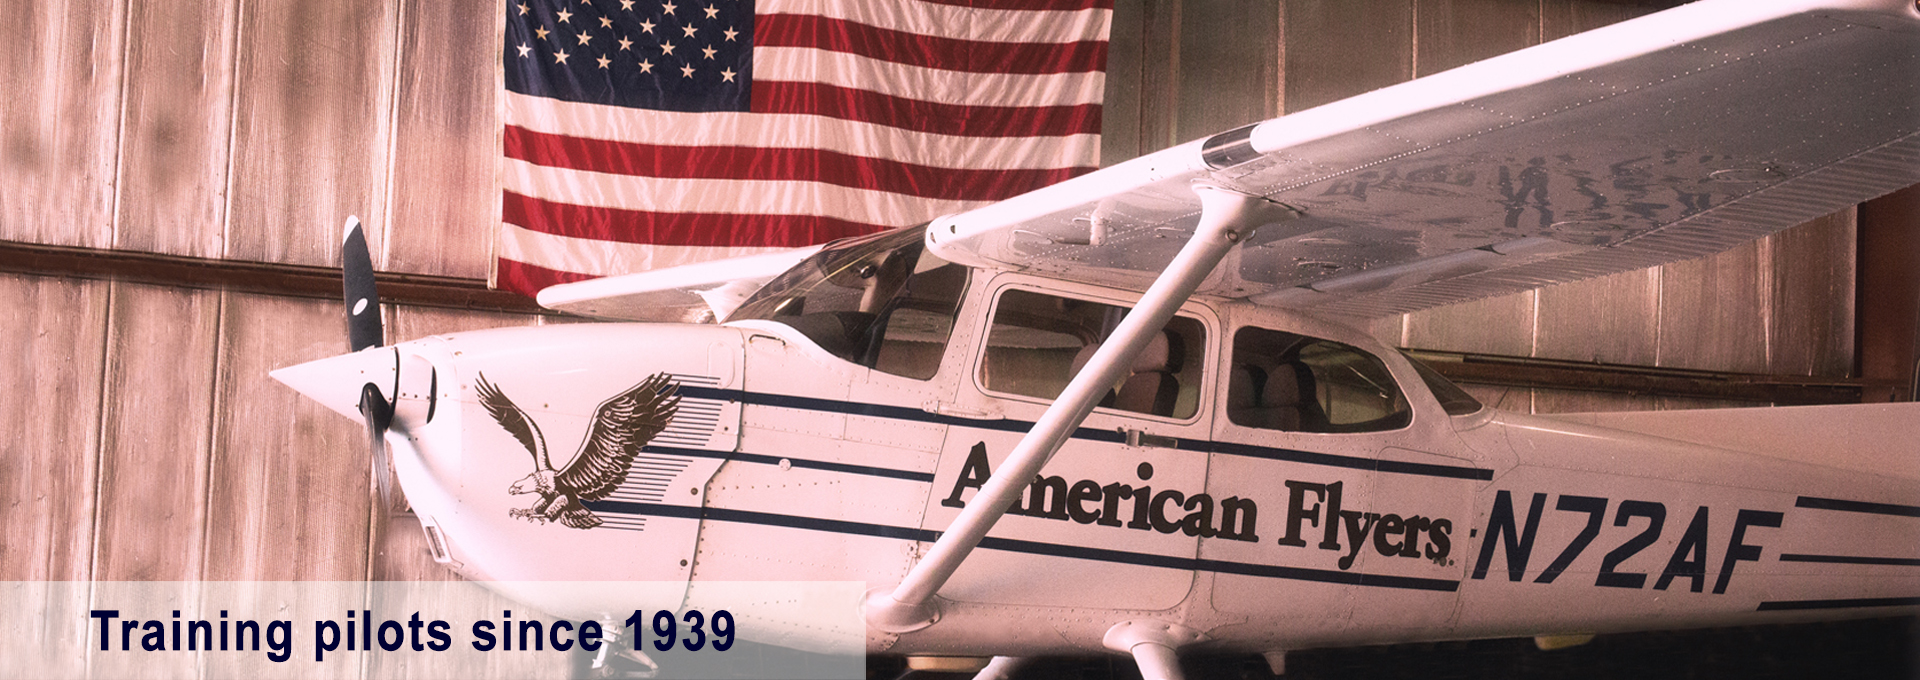 Pilot Training Specialists since 1939